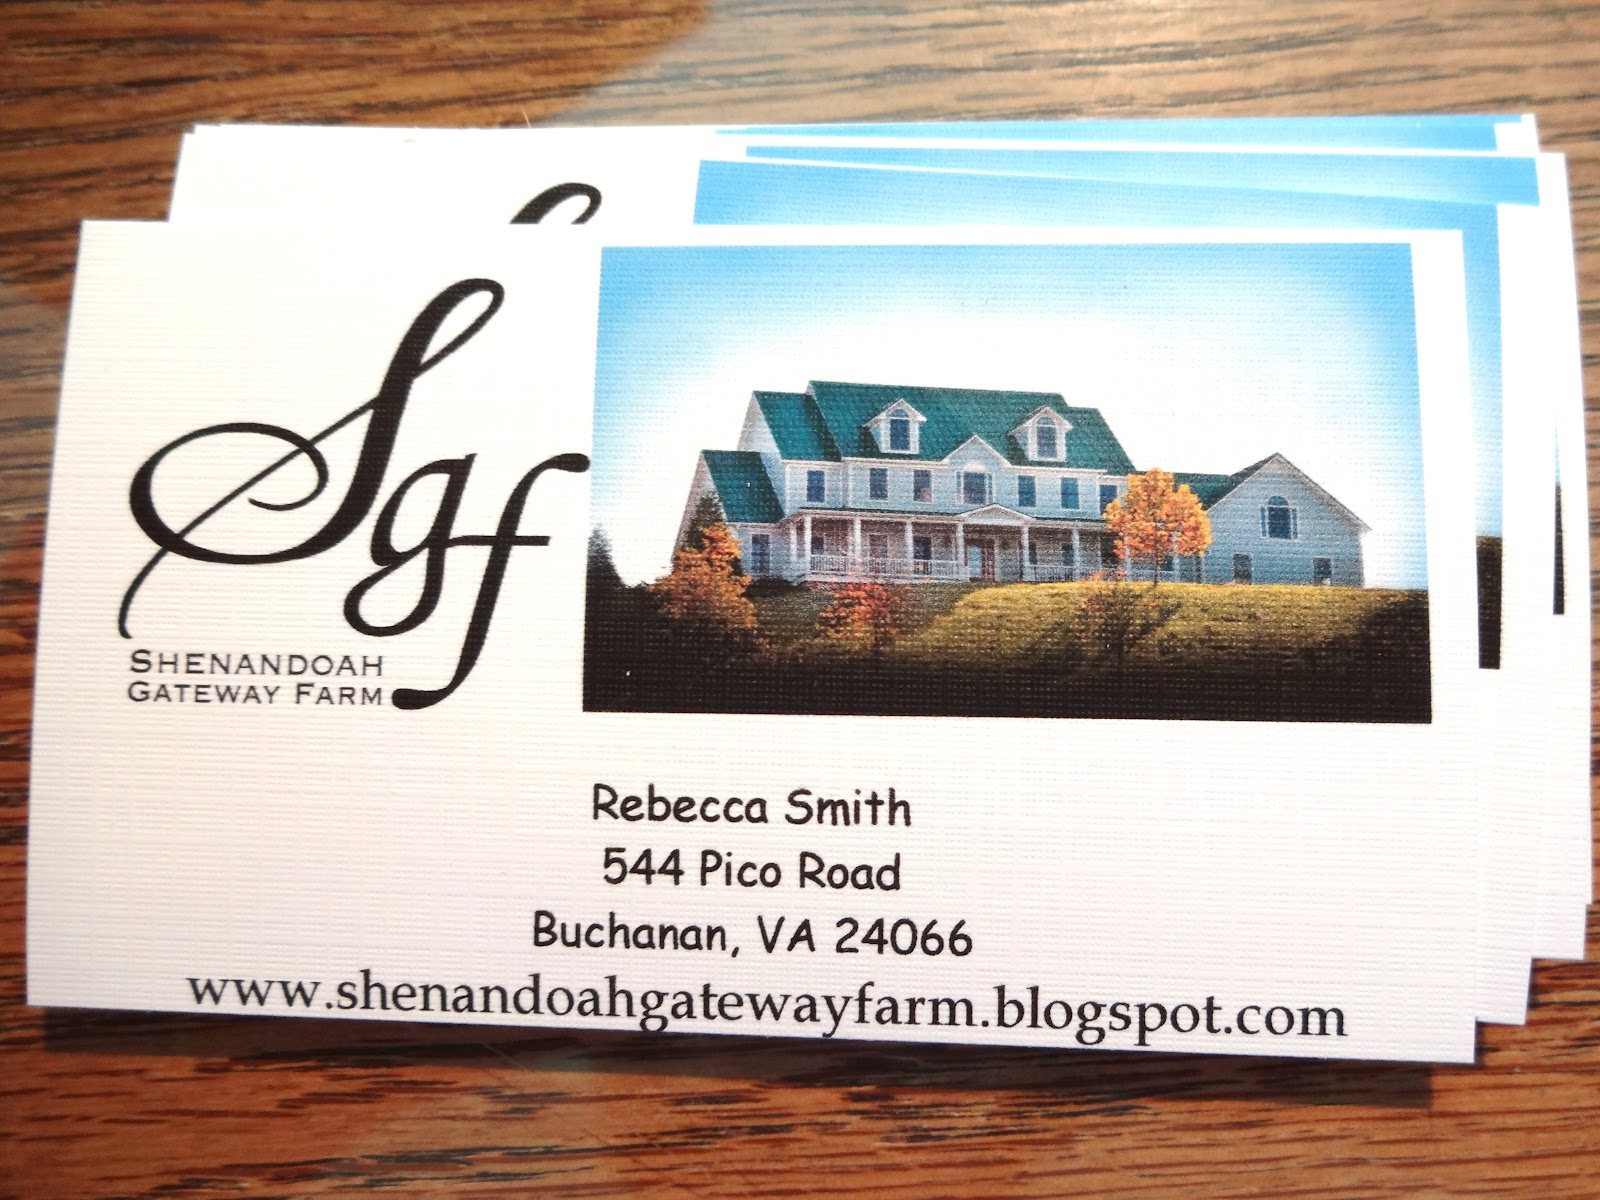 Shenandoah gateway farm business cards business cards magicingreecefo Choice Image